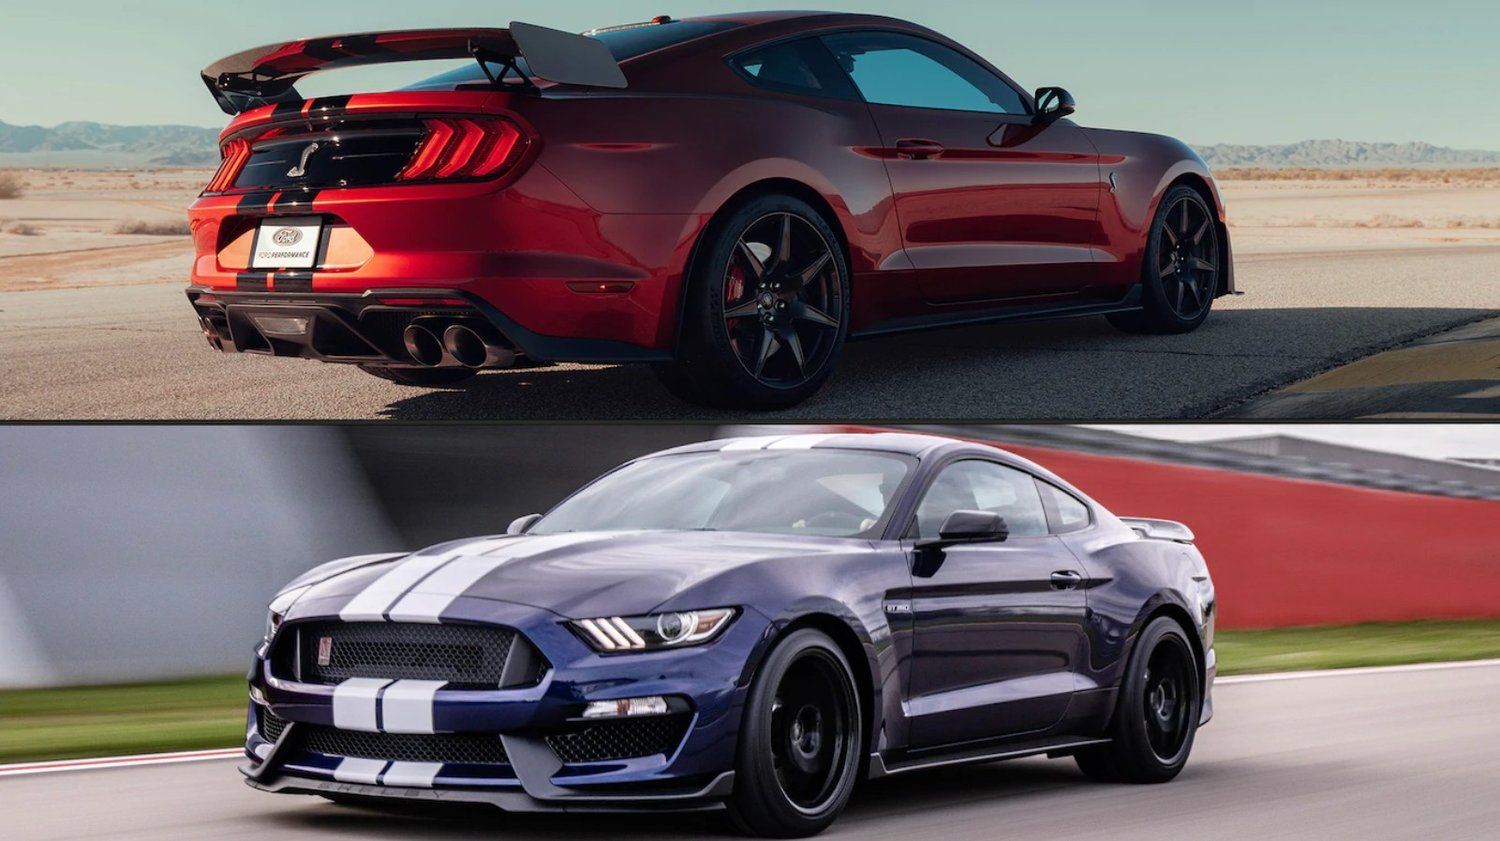 2020 Ford Mustang Shelby Gt500 Vs Gt350 How They Re Different Shelby Mustang Gt500 Ford Mustang Shelby Mustang Shelby